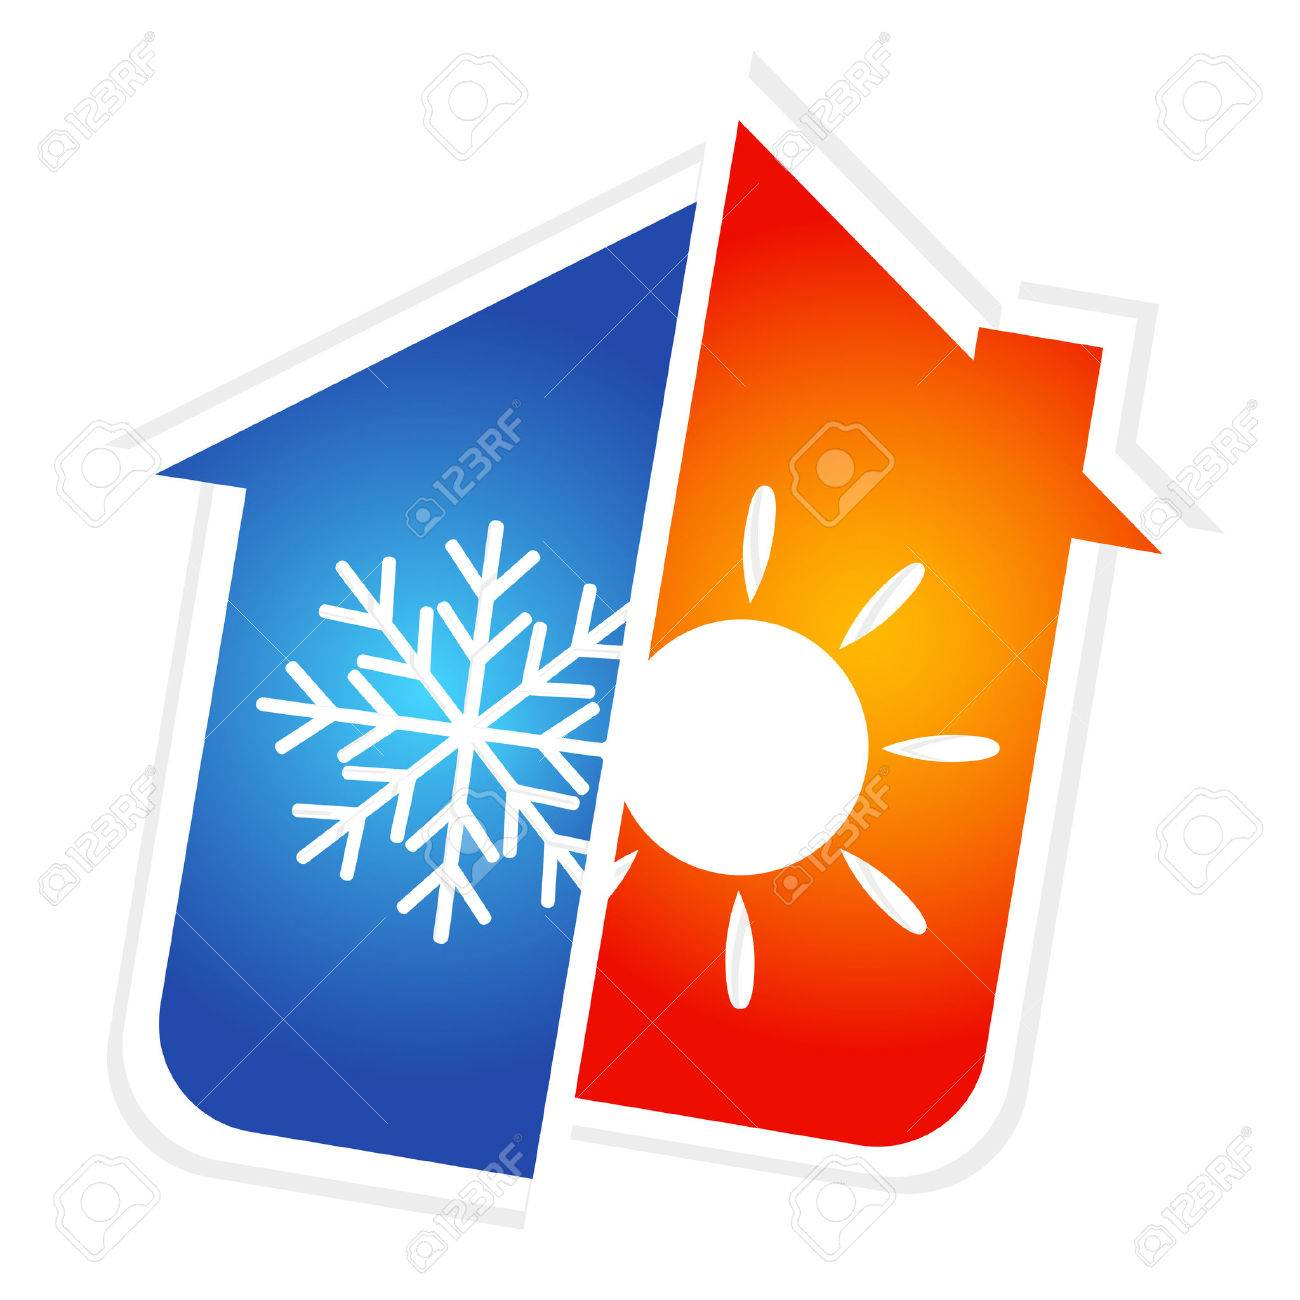 design for home air conditioner, vector - 28526717